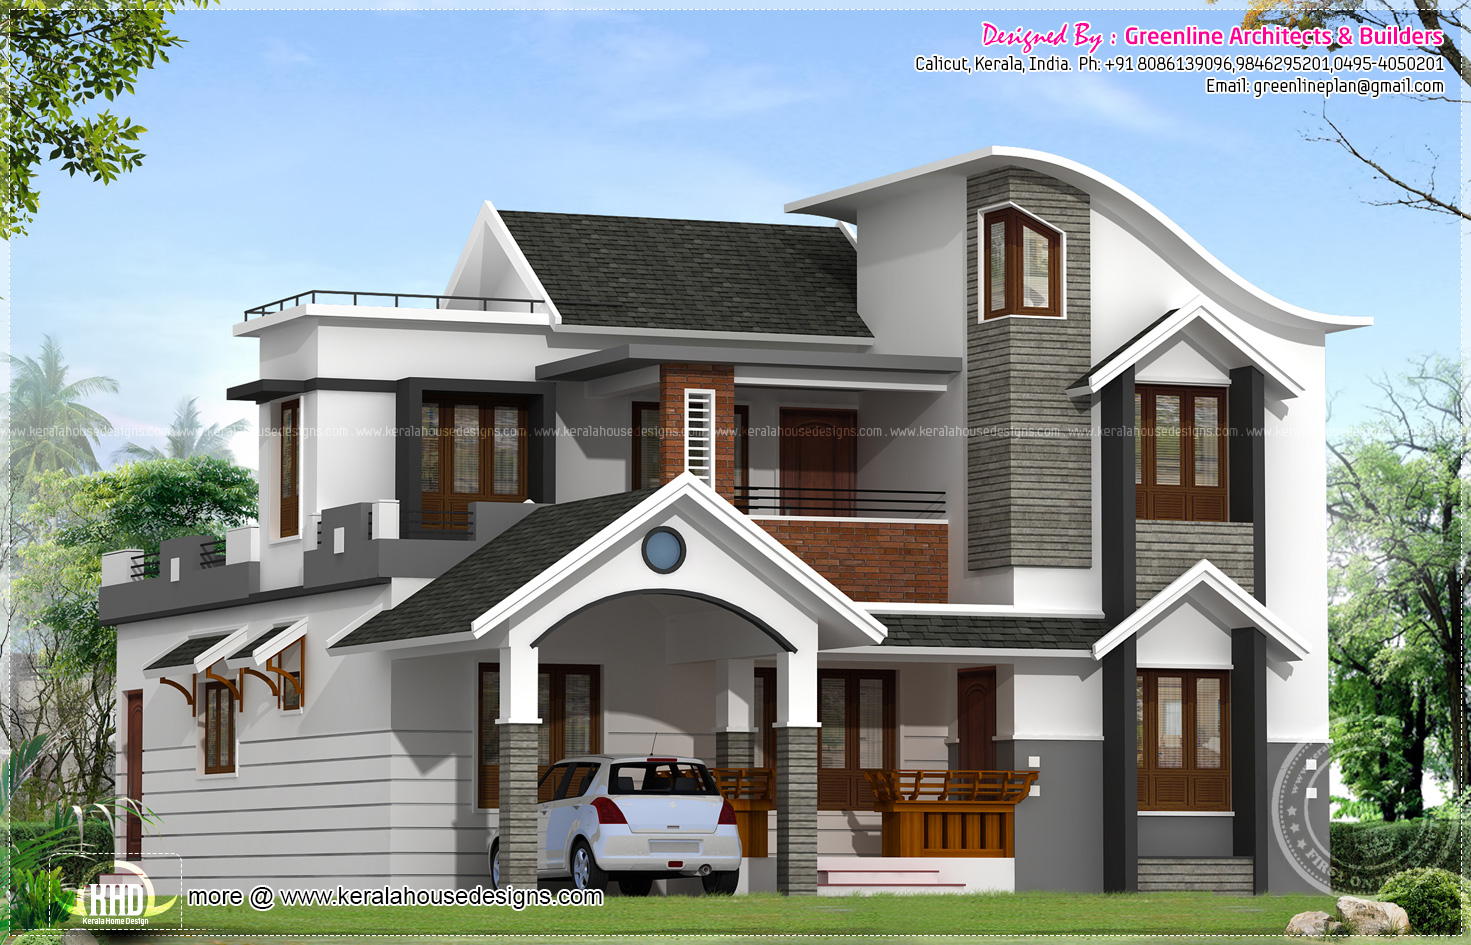 Modern house architecture in kerala kerala home design for Modern house in kerala